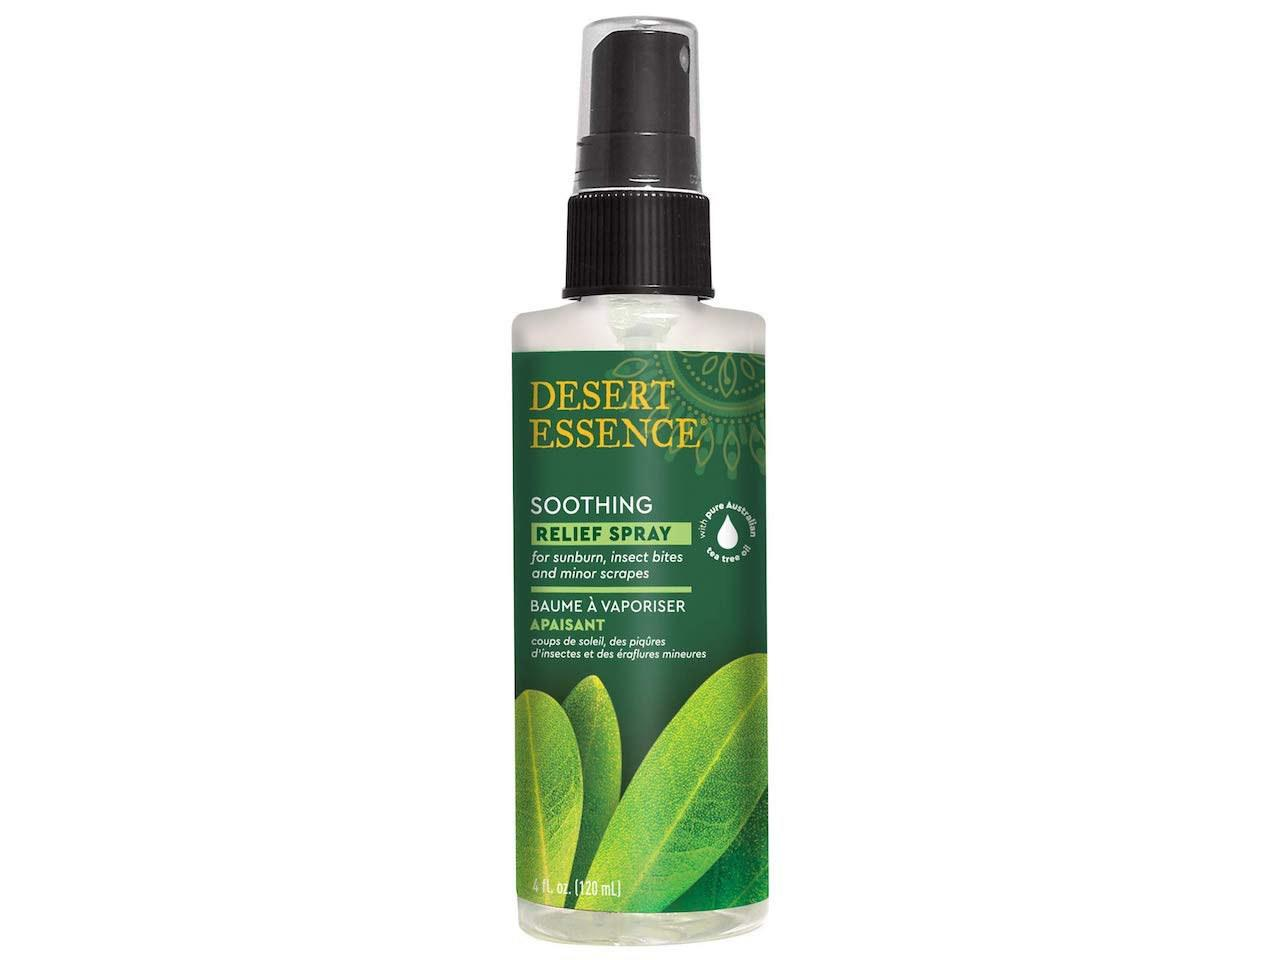 """<p>Desert Essence products were my first entry into the tea tree oil world—and wow did they sell me! I started with their <a href=""""https://www.amazon.com/Desert-Essence-Organic-Tree-Ounce/dp/B00028QAVS?ref_=ast_sto_dp"""">pure tea tree oil</a>, which I would use by mixing a few drops into my skin-care products or just with water on a cotton round to use on my face.</p> <p>Now, I love the convenience of using the (already diluted!) relief spray on both my skin and my scalp whenever there's an issue to clear up. But beware: It does smell <em>quite</em> strongly of tea tree oil. It's a smell I've grown to actually like, but maybe use it when your roommates are out or at least give them a warning.</p> <p><strong>Buy it:</strong> $7, <a href=""""https://www.amazon.com/Desert-Essence-Organic-Relief-Spray/dp/B000Z93J54"""" rel=""""nofollow"""">amazon.com</a></p>"""